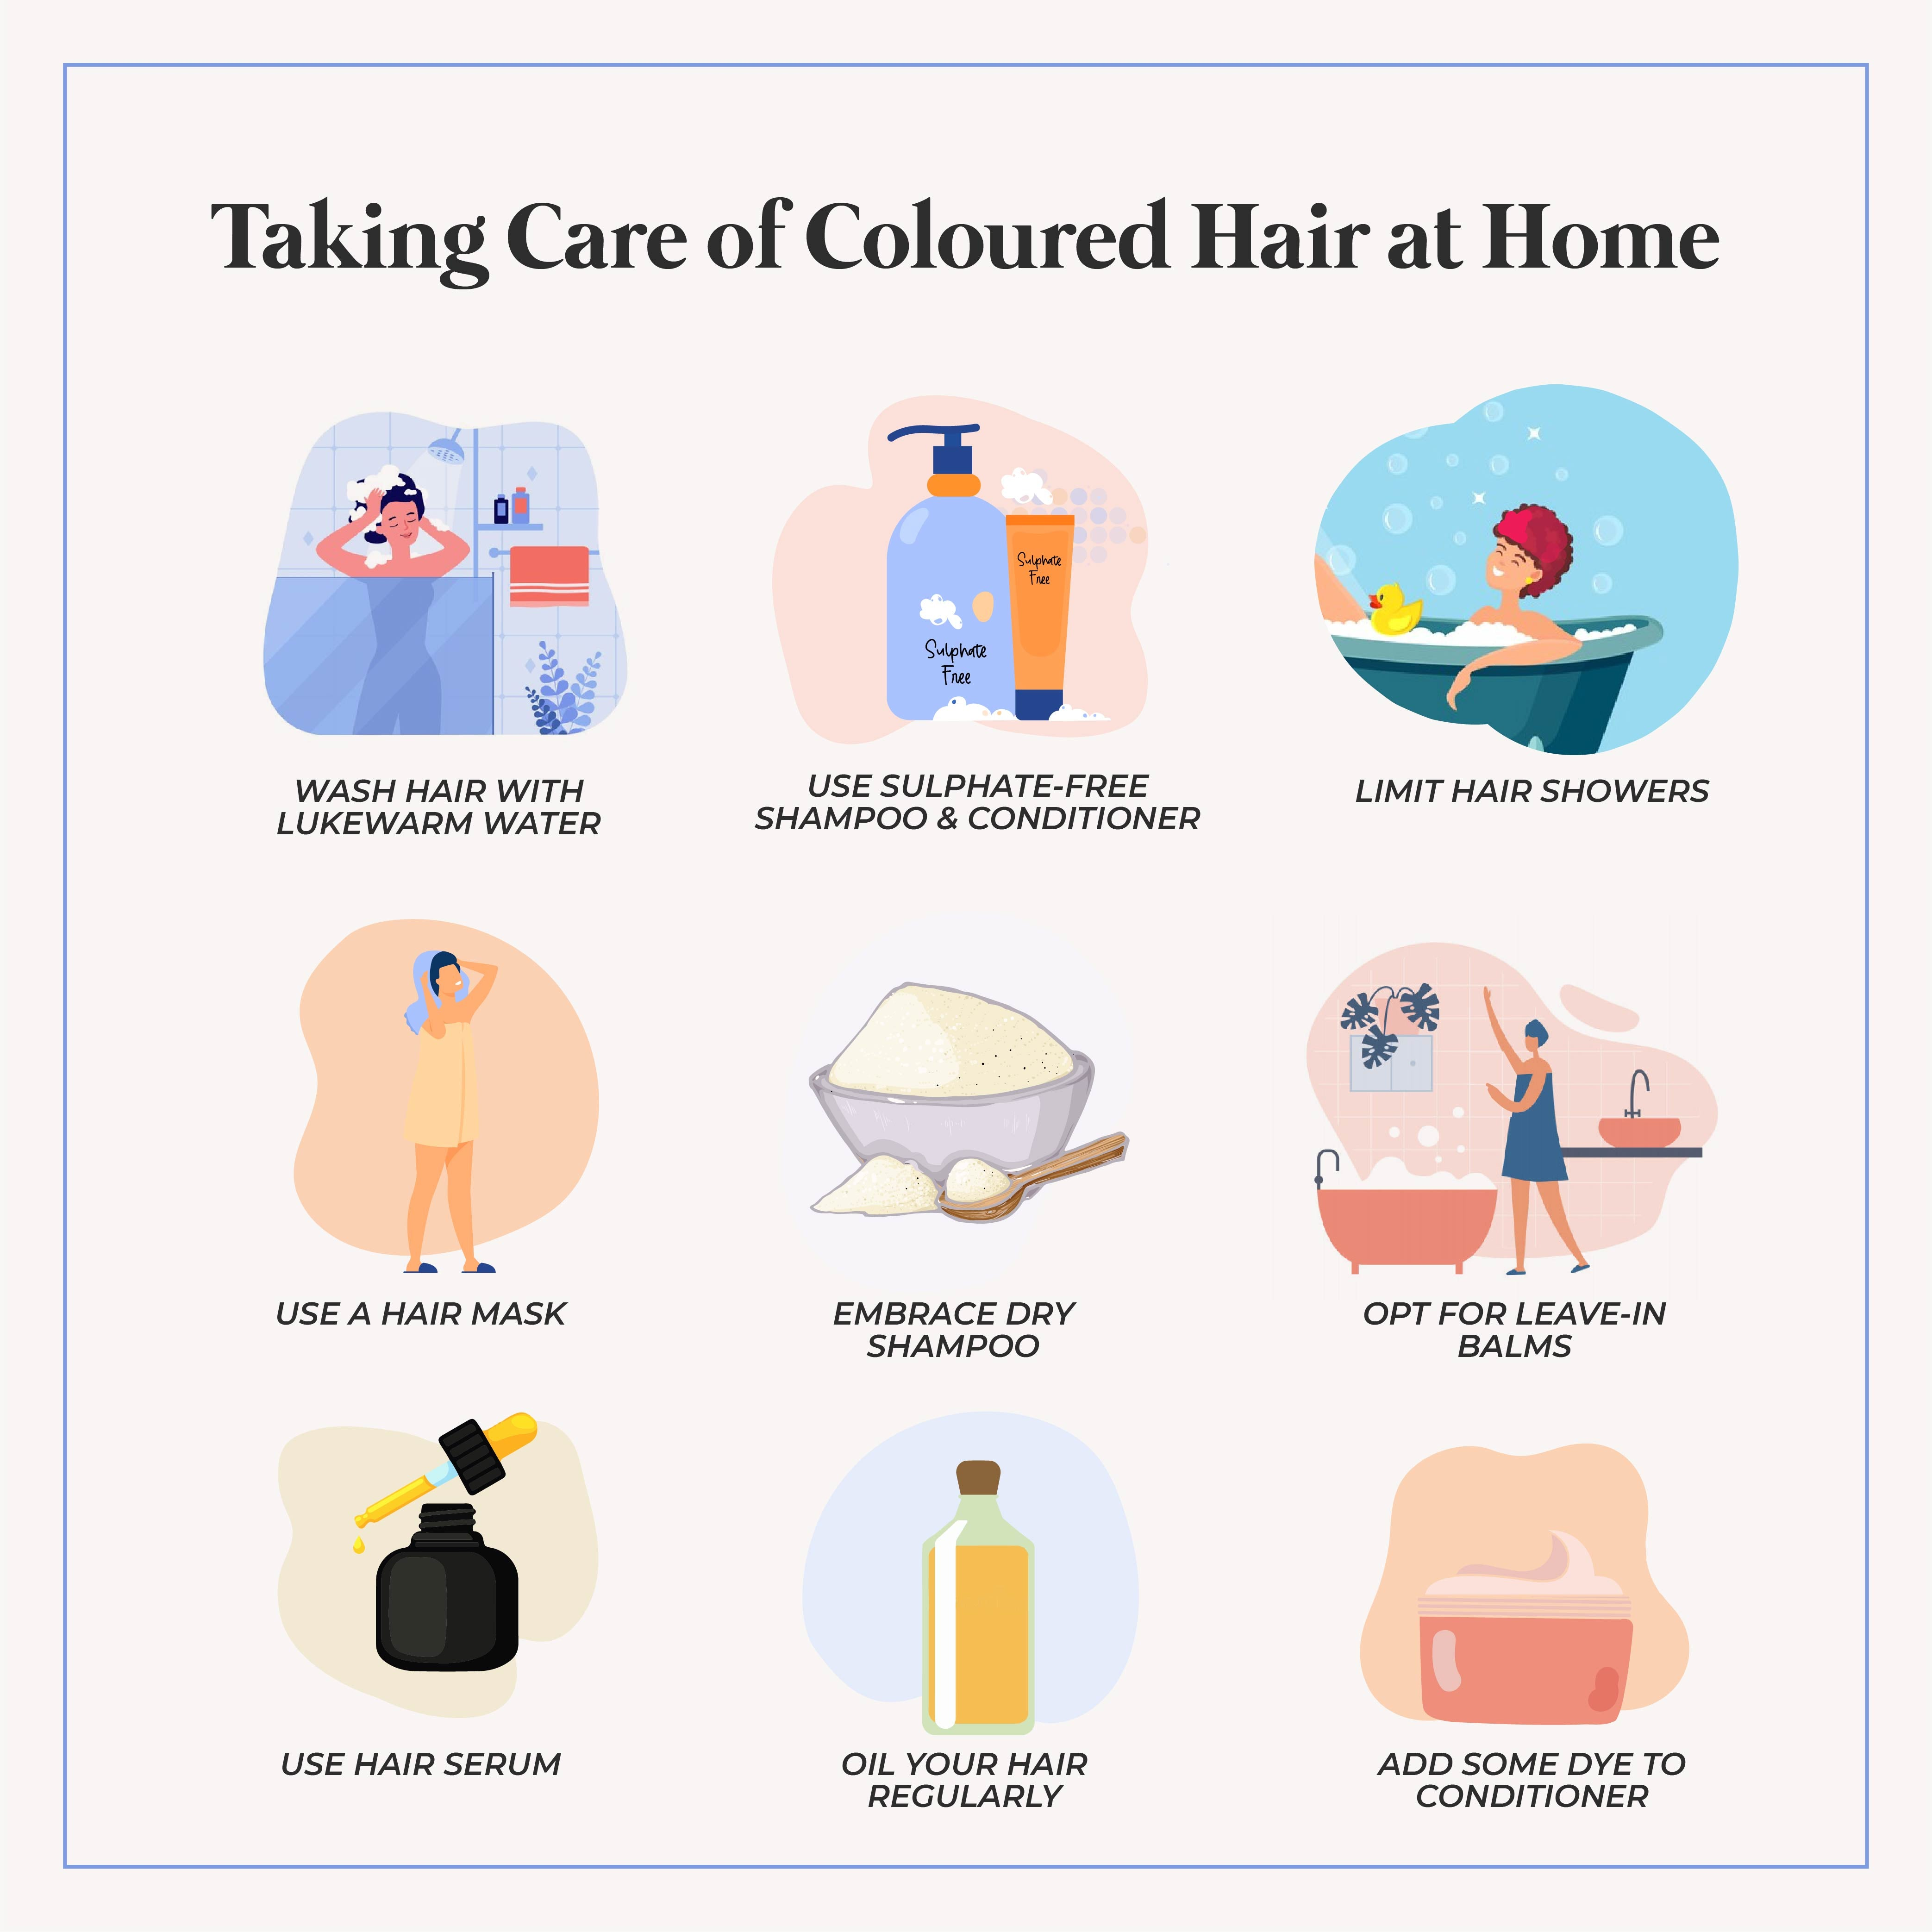 This is an image of how to take care of coloured hair at home